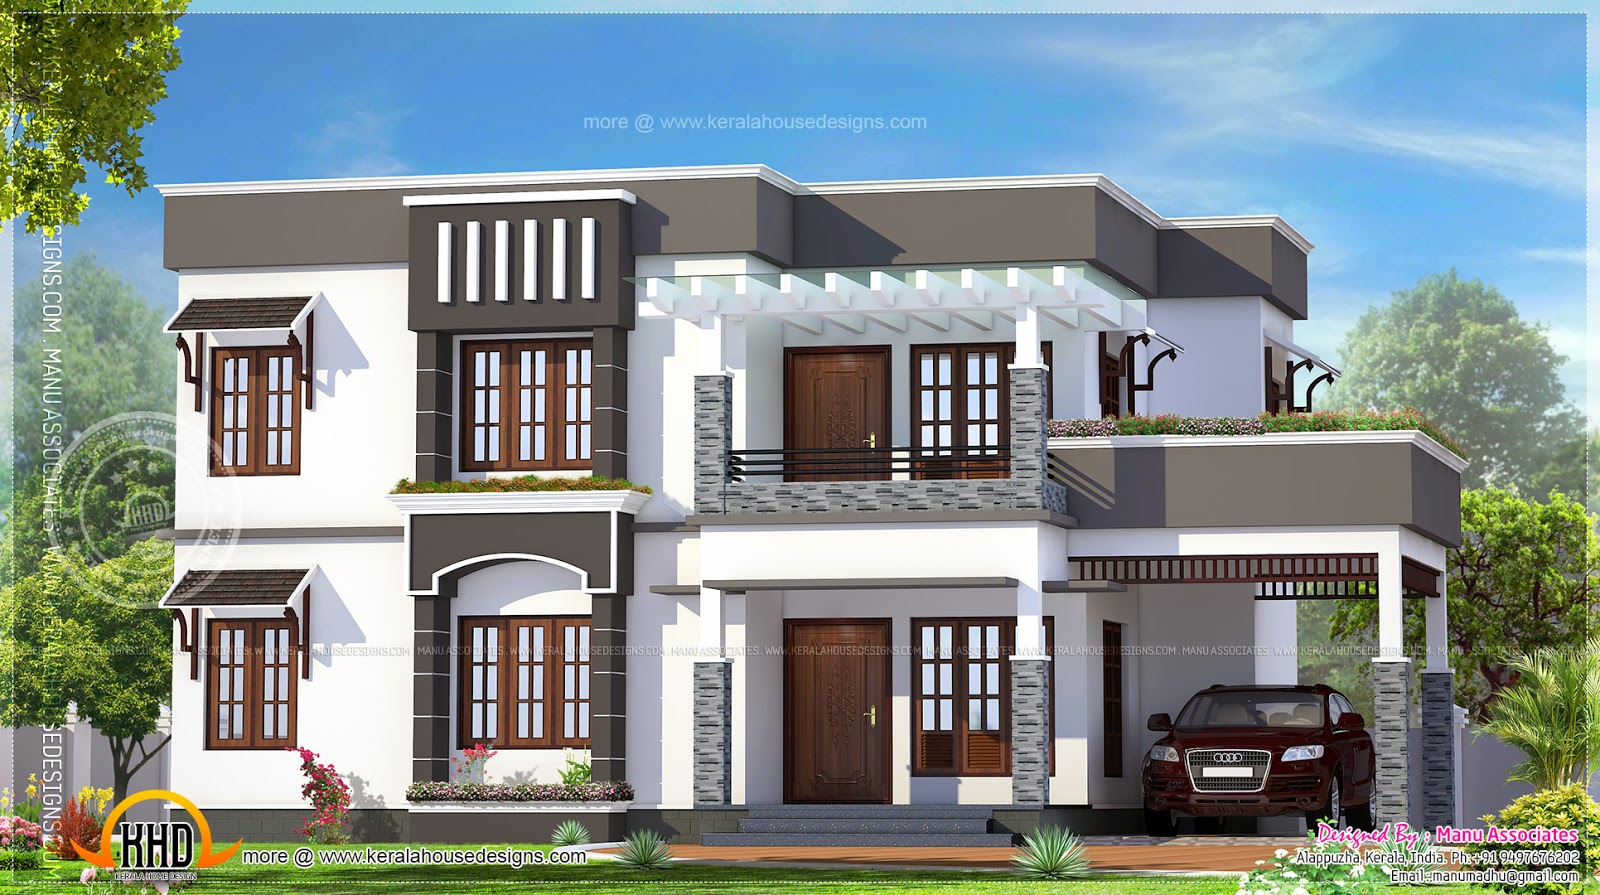 Roof Design Ideas: 4 BHK Flat Roof House Exterior